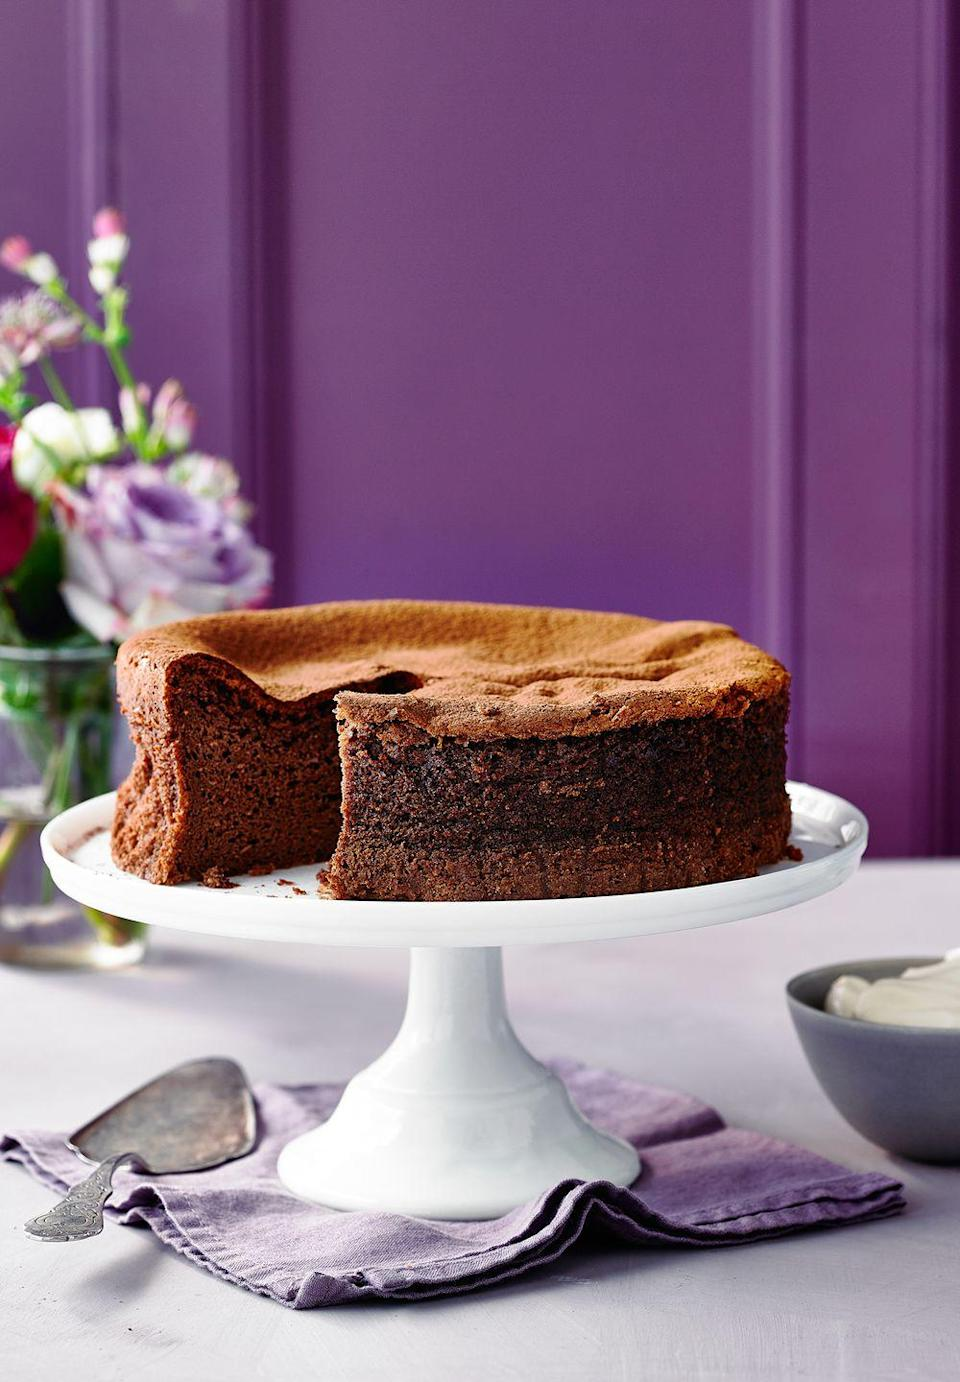 """<p>This light cake is like a set mousse – you can even hear the bubbles pop as you slice it! We recommend using Green & Black's chocolate, as it has the right percentage of cocoa solids.</p><p><strong>Recipe: <a href=""""https://www.goodhousekeeping.com/uk/food/recipes/a26943110/three-ingredient-chocolate-cake/"""" rel=""""nofollow noopener"""" target=""""_blank"""" data-ylk=""""slk:Three-ingredient Chocolate Cake"""" class=""""link rapid-noclick-resp"""">Three-ingredient Chocolate Cake</a></strong></p>"""